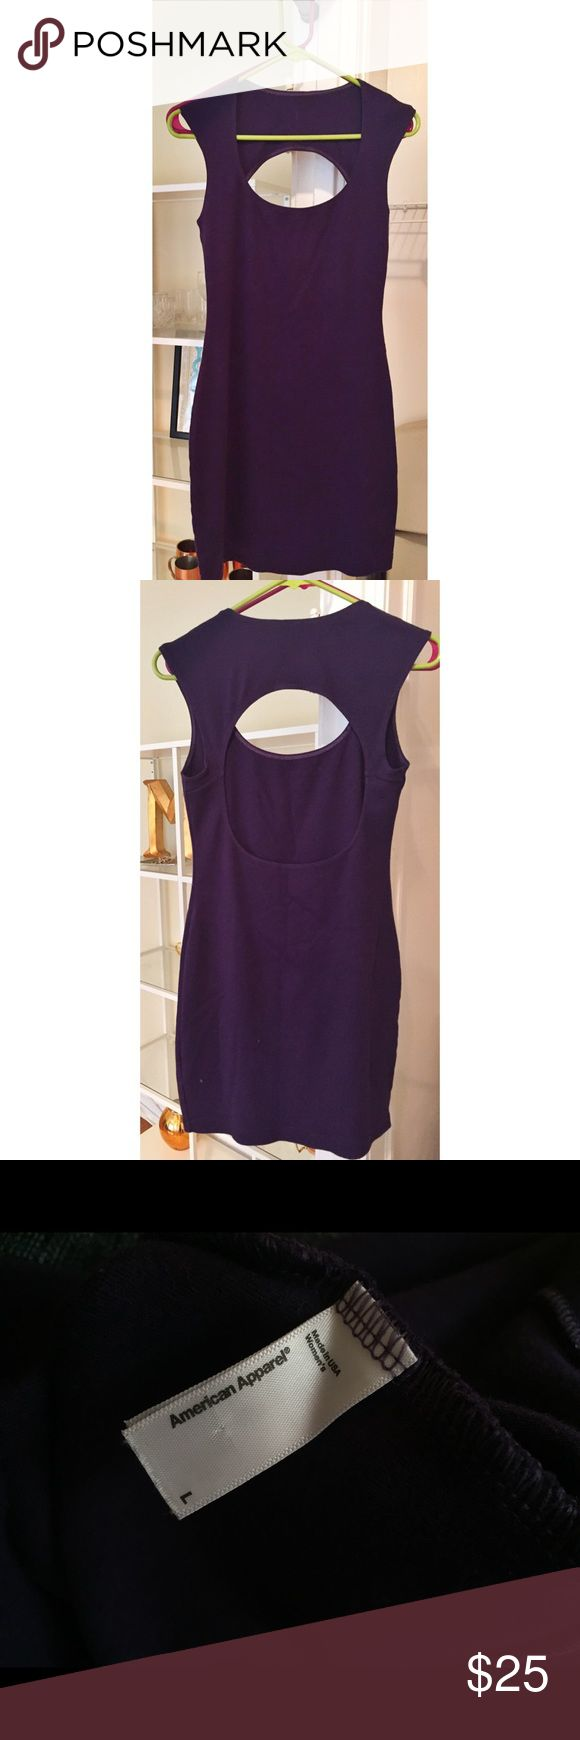 "American Apparel Purple Body con Midi Dress Beautiful purple bodycon dress from American Apparel. Only worn once or twice. Second pictures shows the back design. Looks great on its own or paired with hose. Size large. I'm 5'10"" and it hits mid-thigh. American Apparel Dresses Midi"